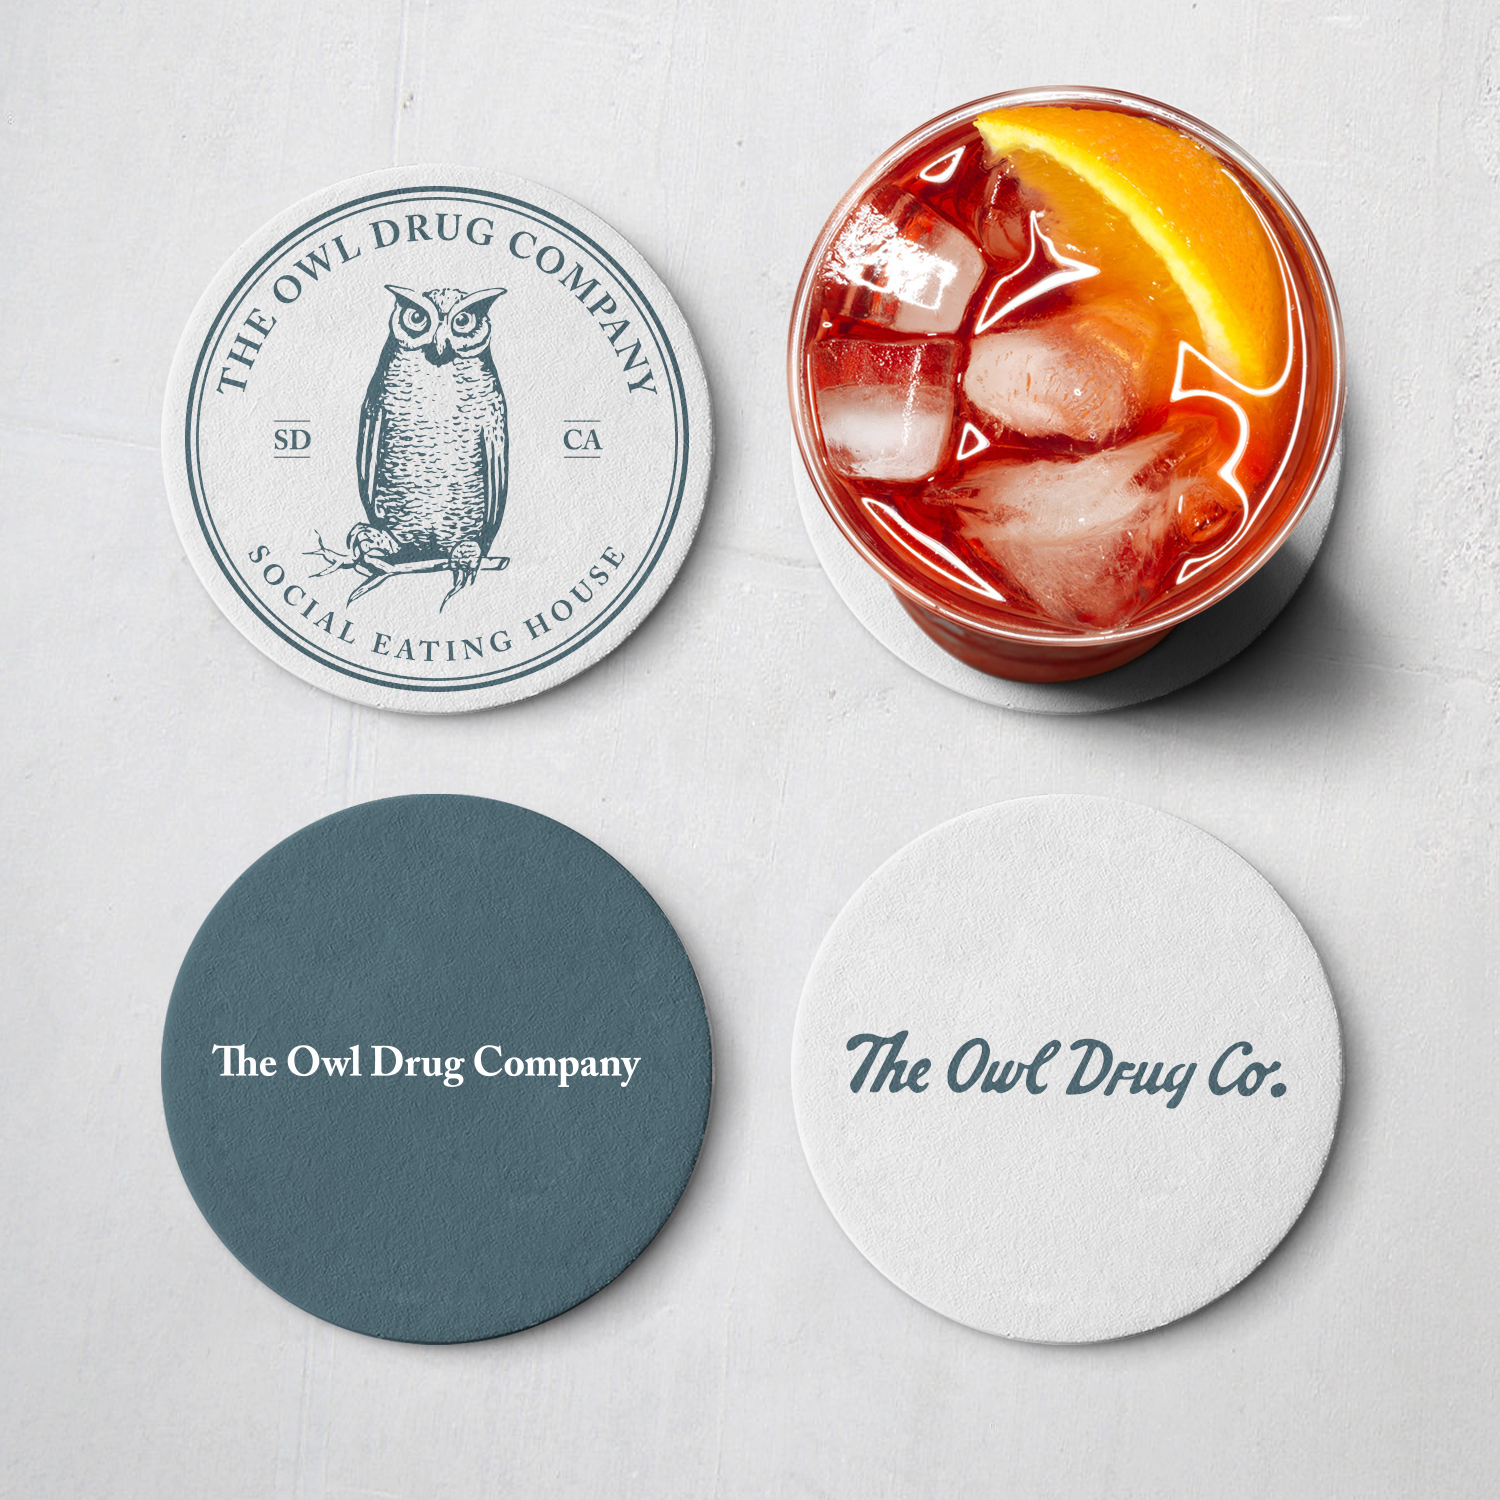 Owl Drug Co Coasters by Gretchen Kamp